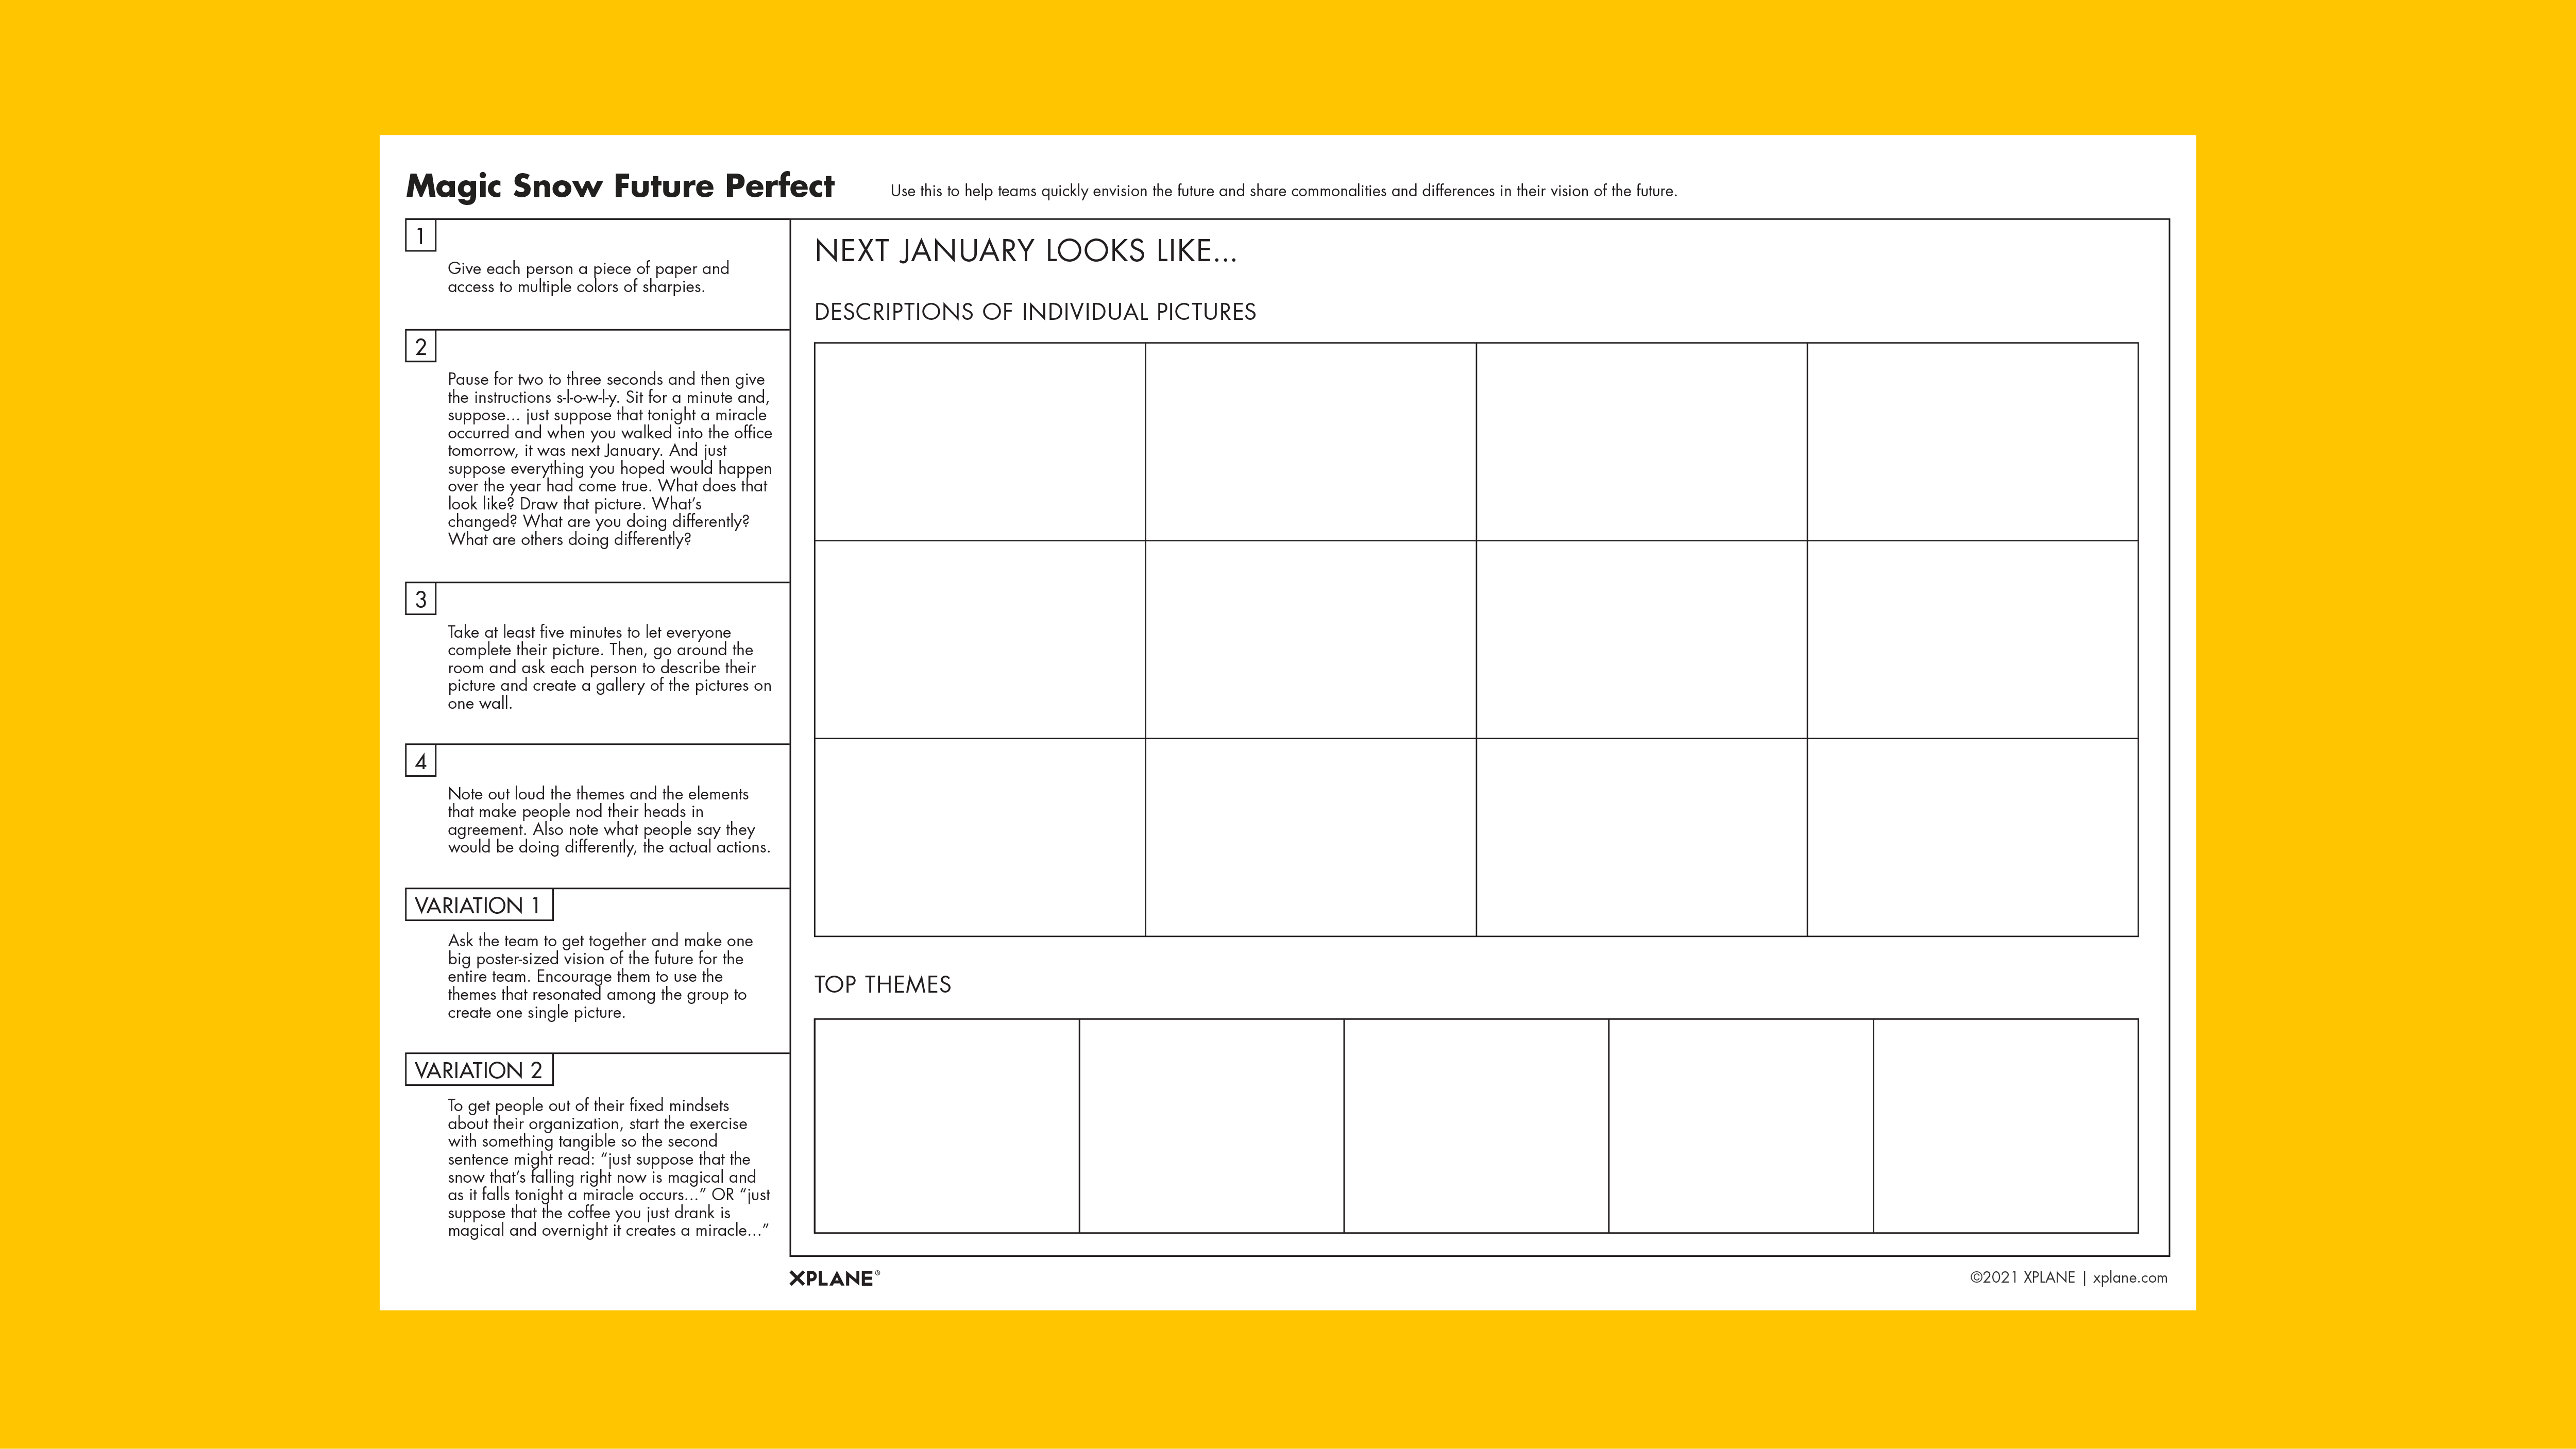 Magic Snow Future Perfect worksheet against a yellow background